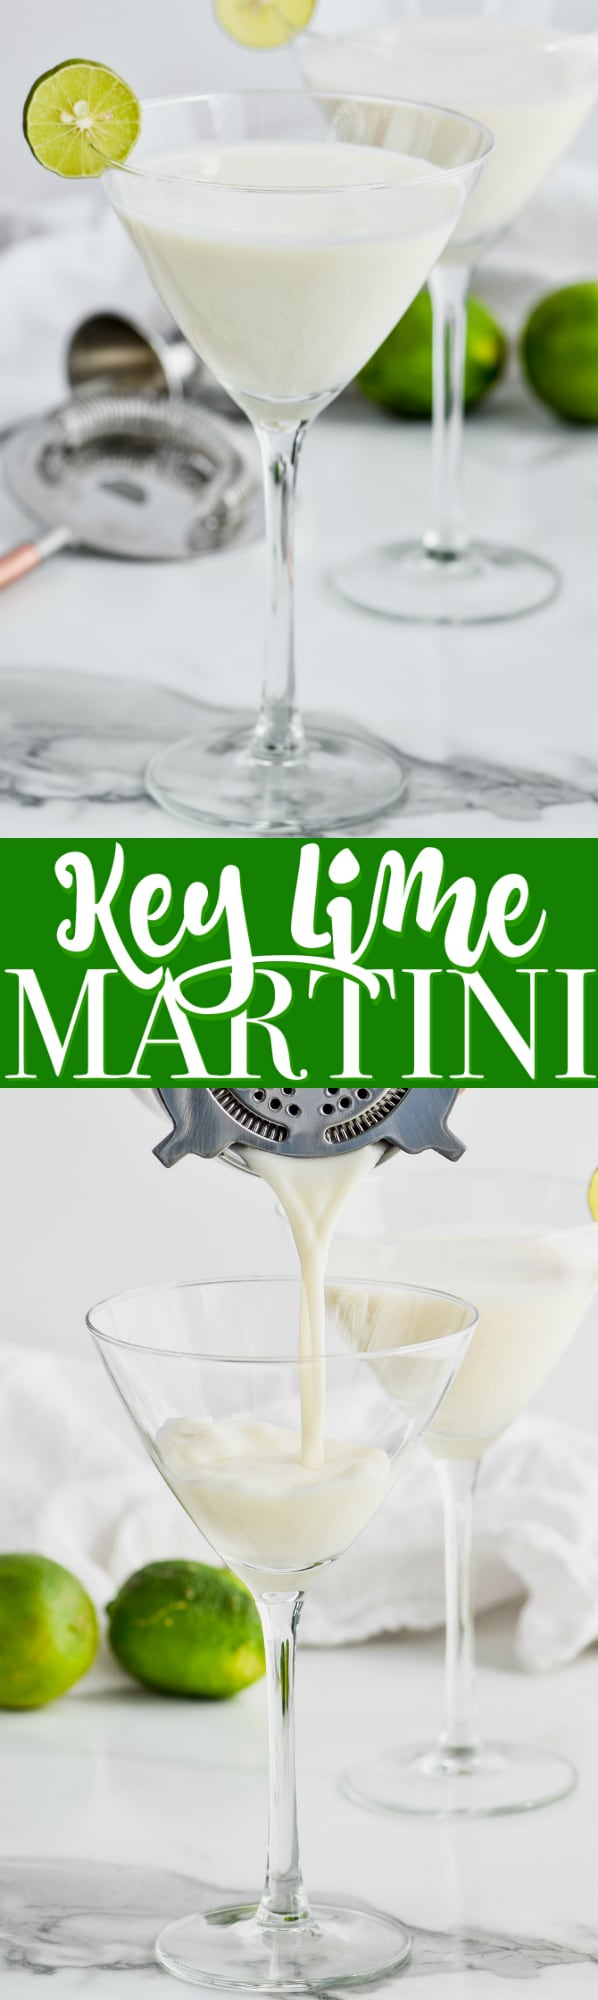 key lime martini in martini glass